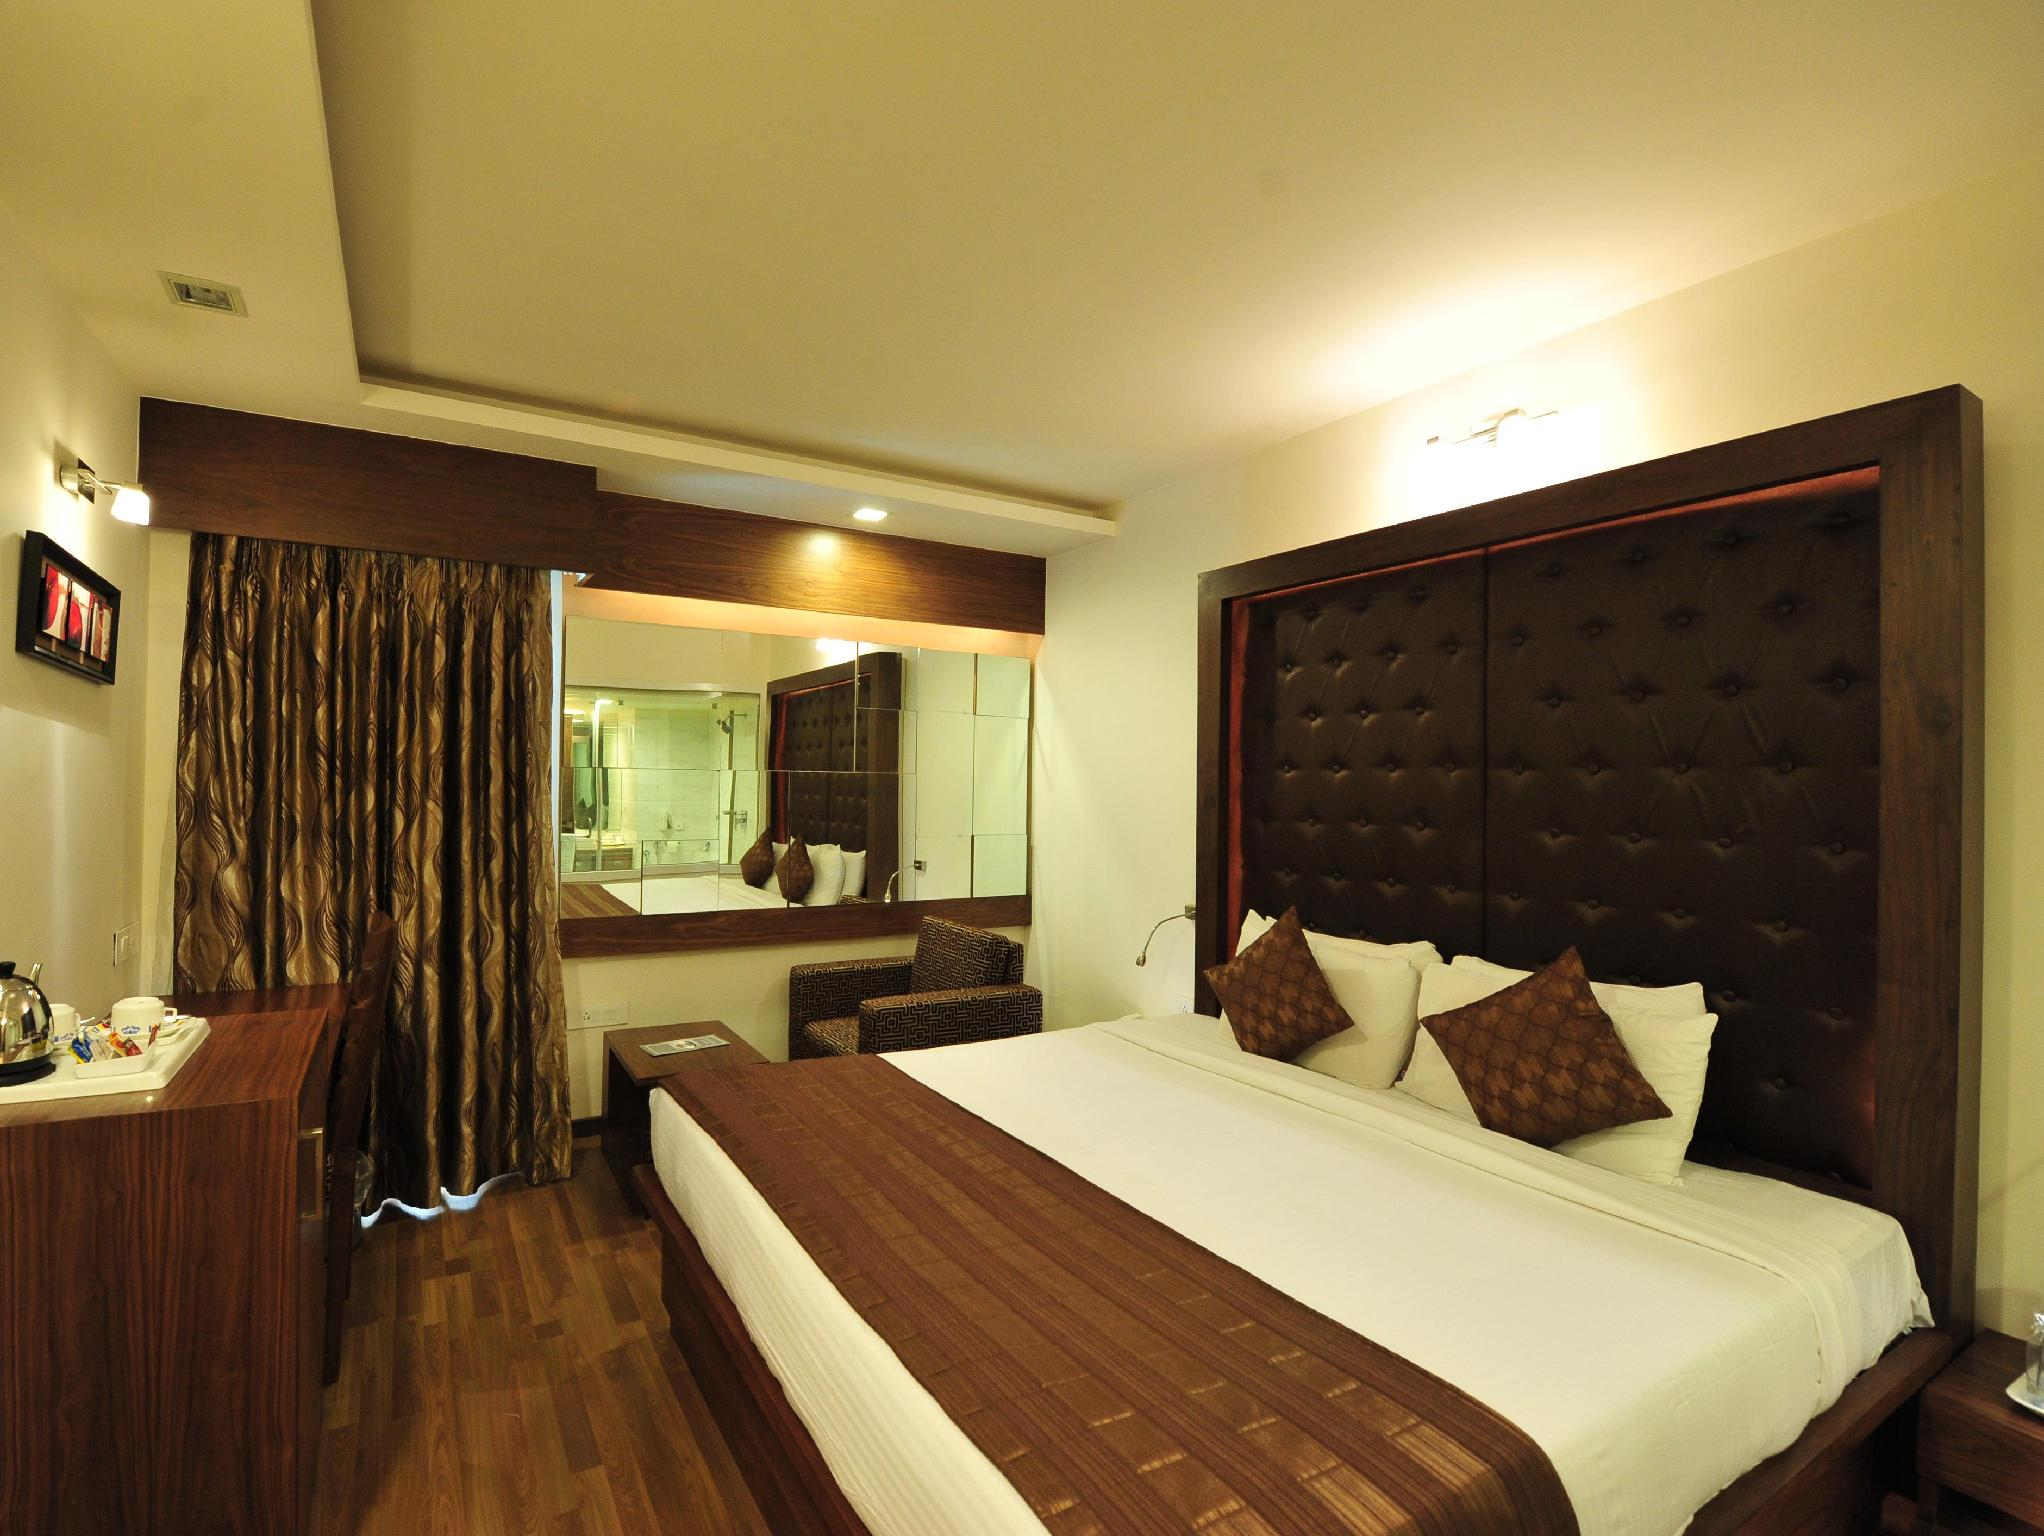 Inder Residency - Hotel and accommodation in India in Ahmedabad